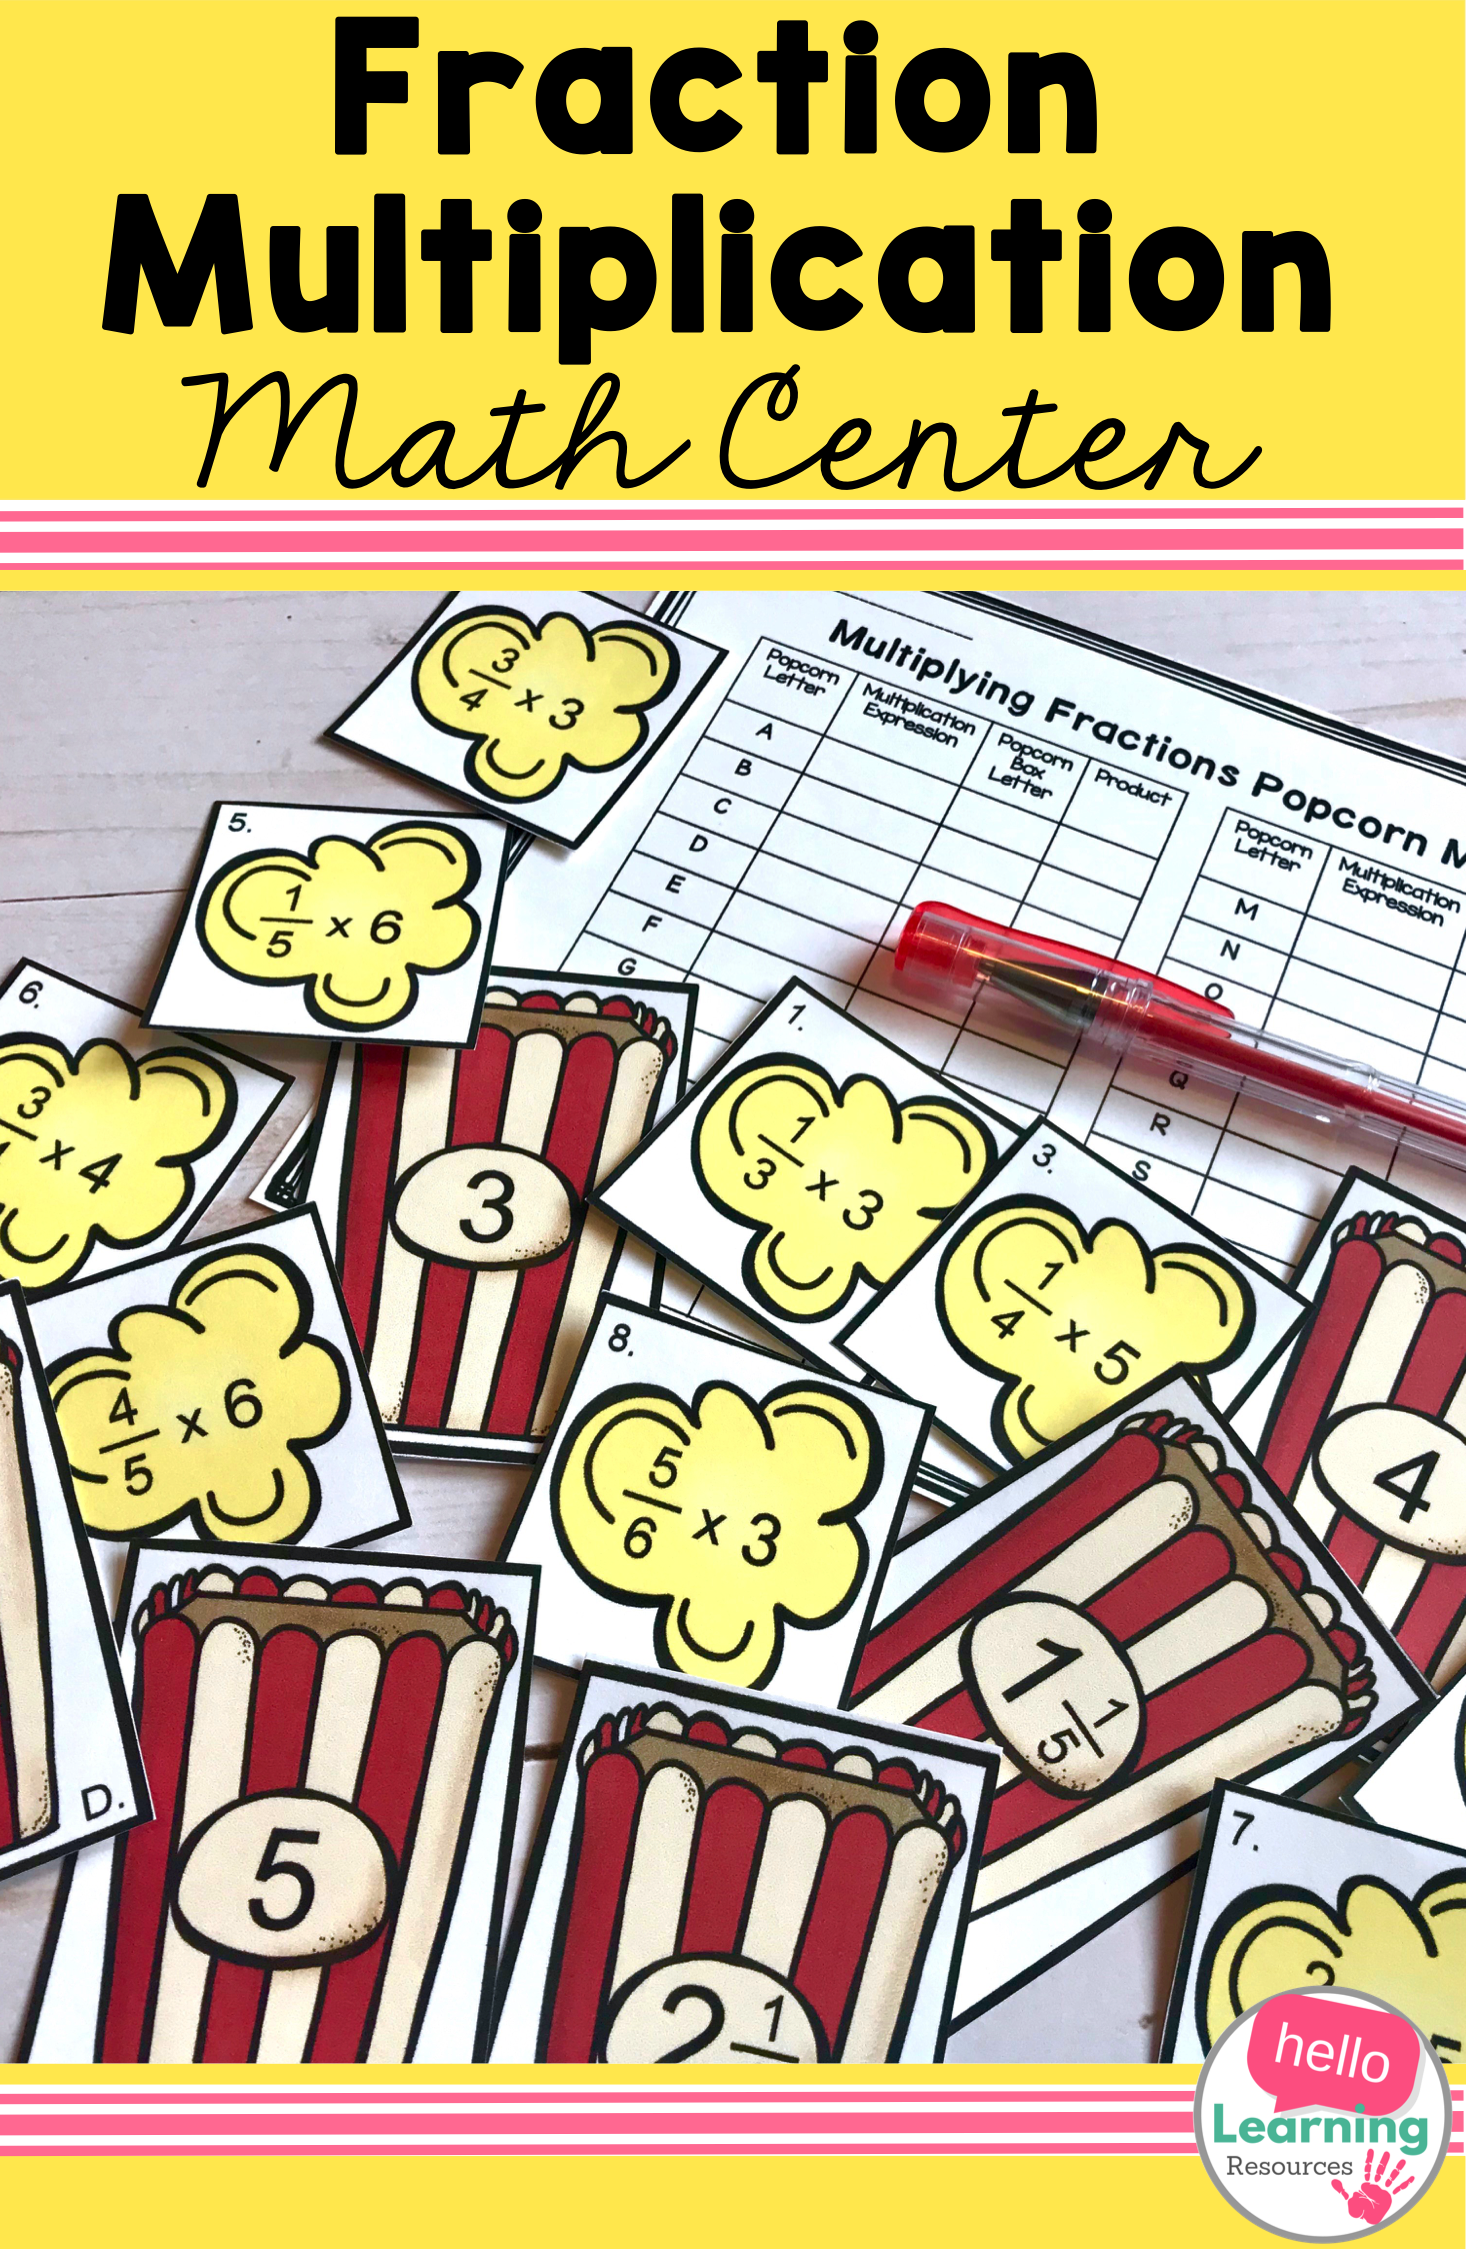 Fraction Multiplication Activity